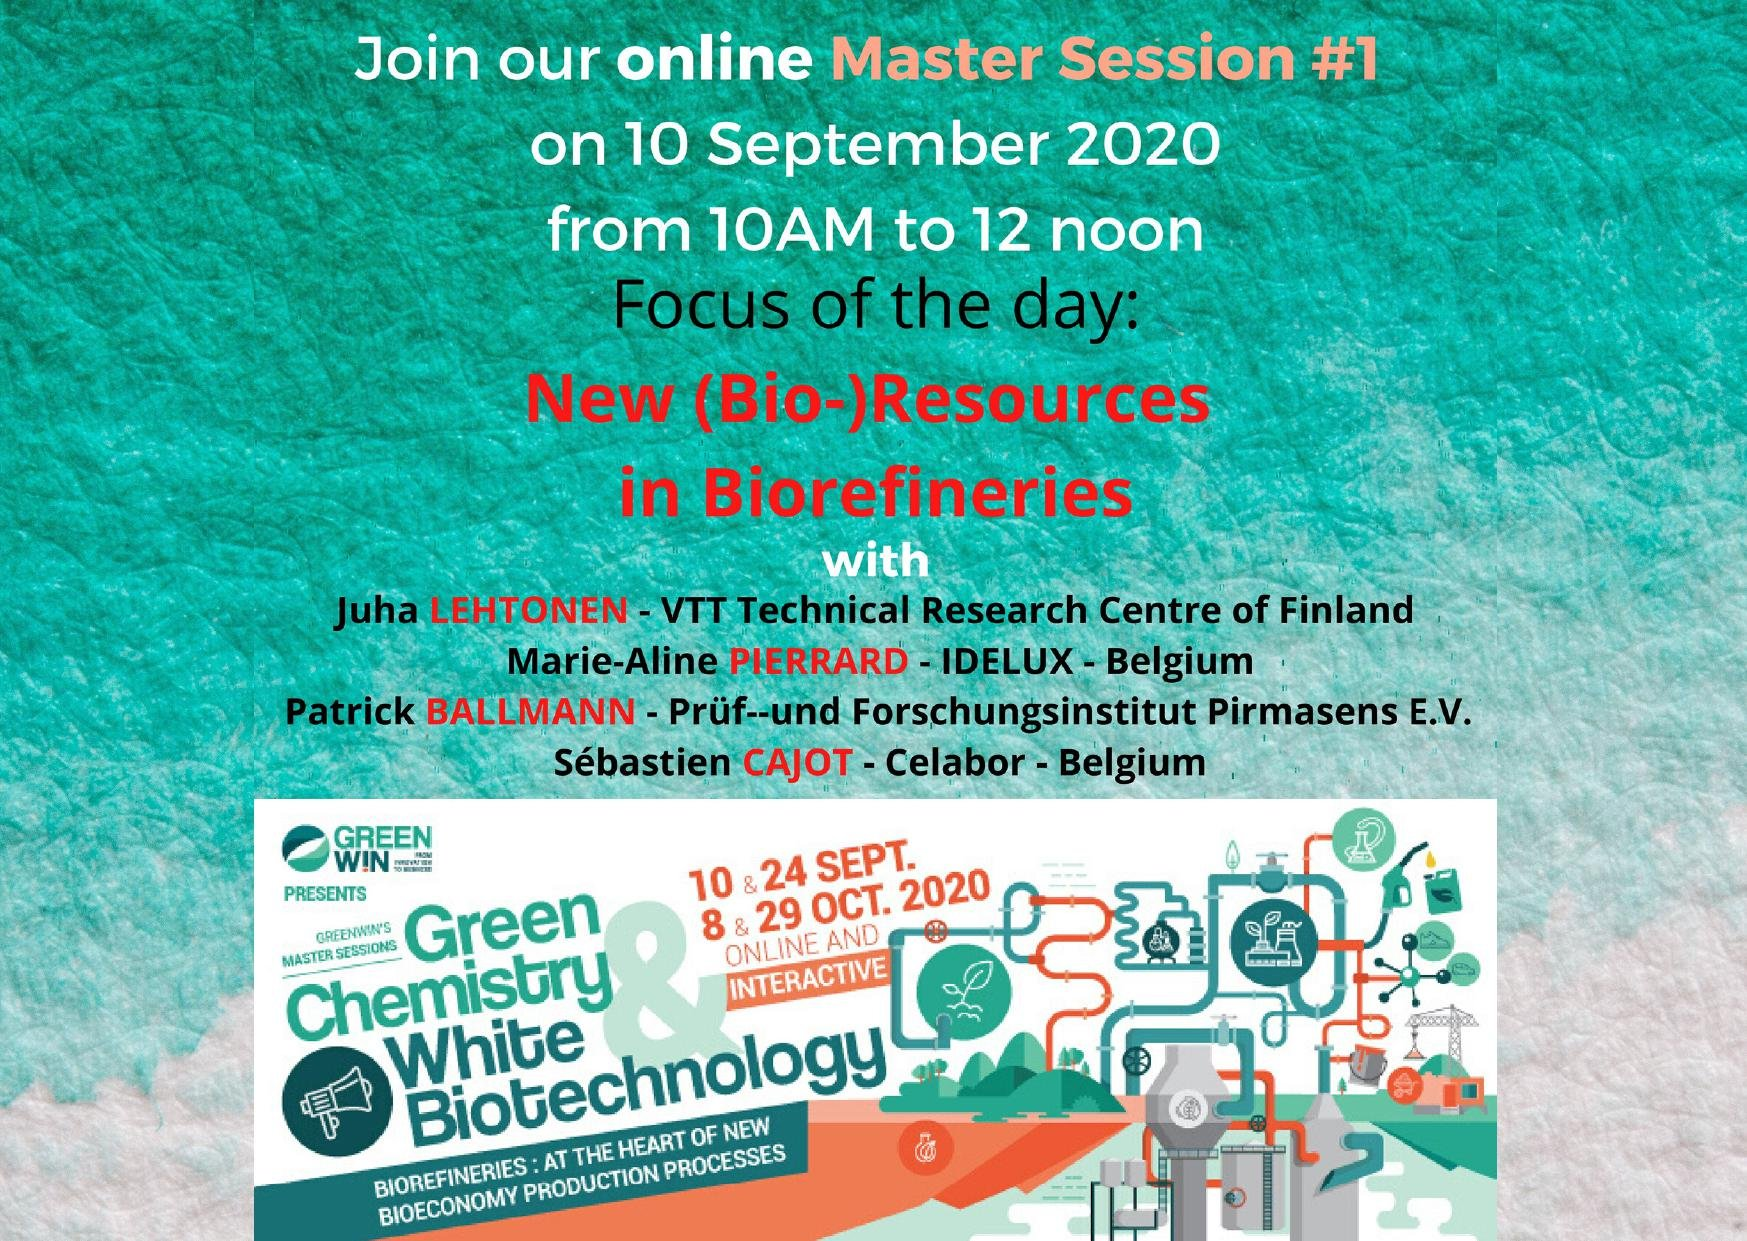 Join us on the 1st of our 4 online Master Session on New (Bio)Resources in Biorefineries